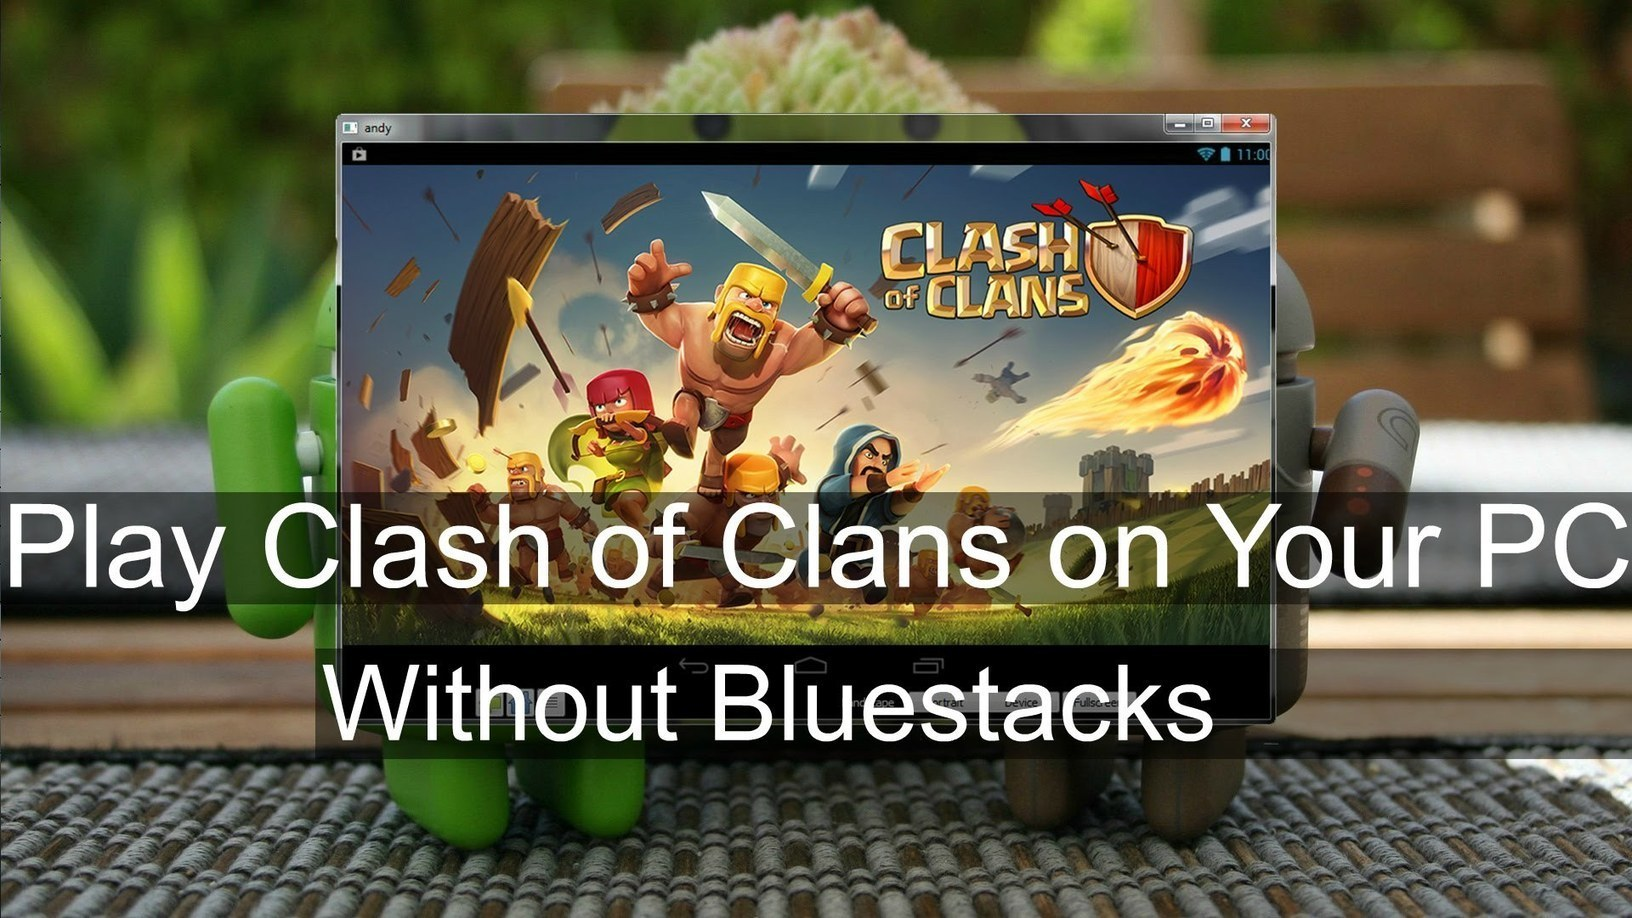 clash of clans for pc windows 10 without bluestacks